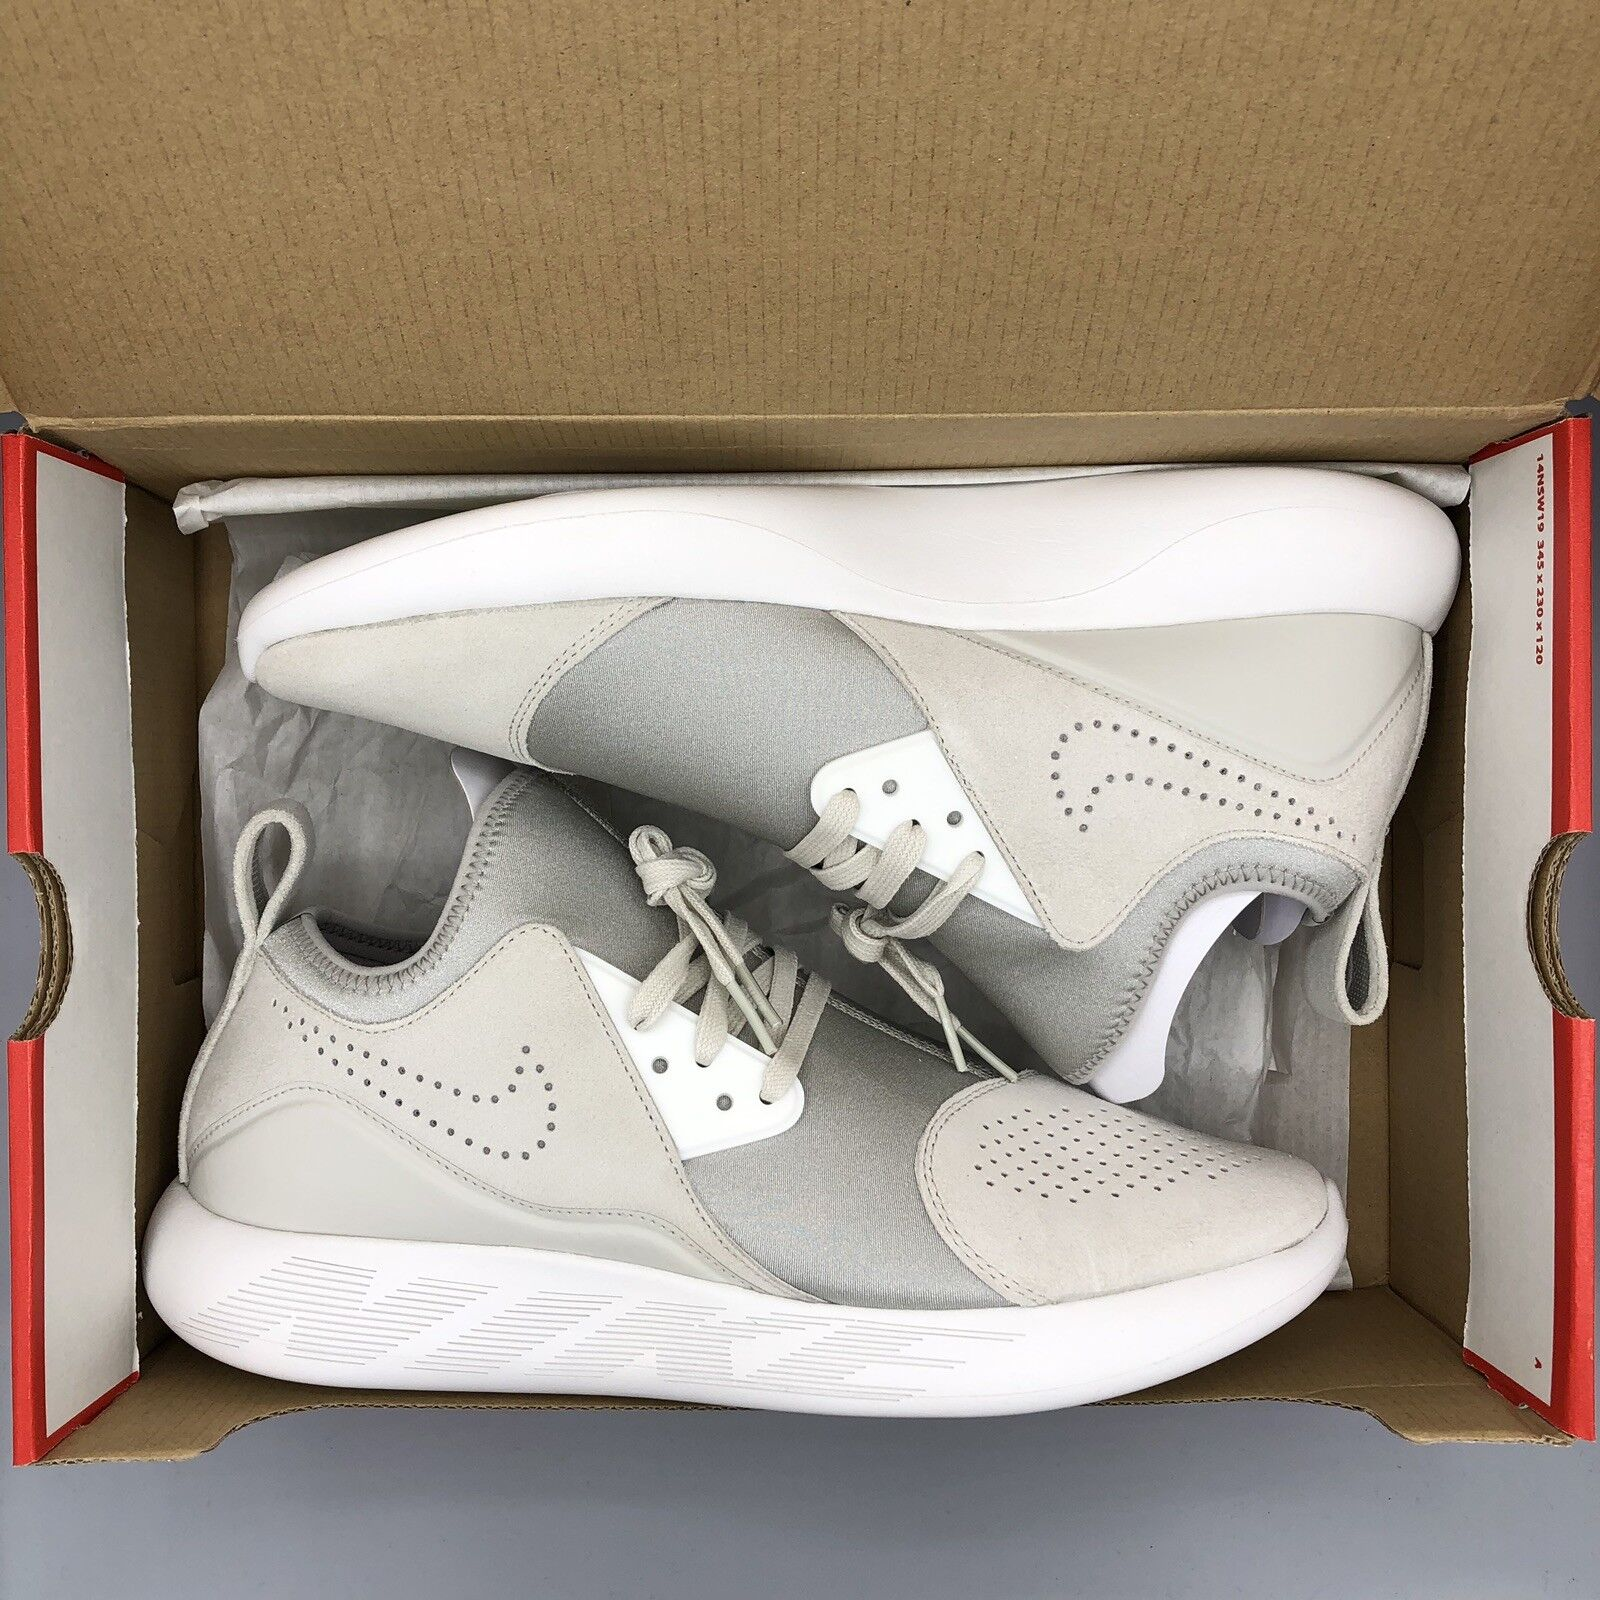 50aeb21eb5 NIKE LUNARCHARGE 923281-002 LIGHT SUMMIT WHITE SIZE 12 Max PREMIUM ...